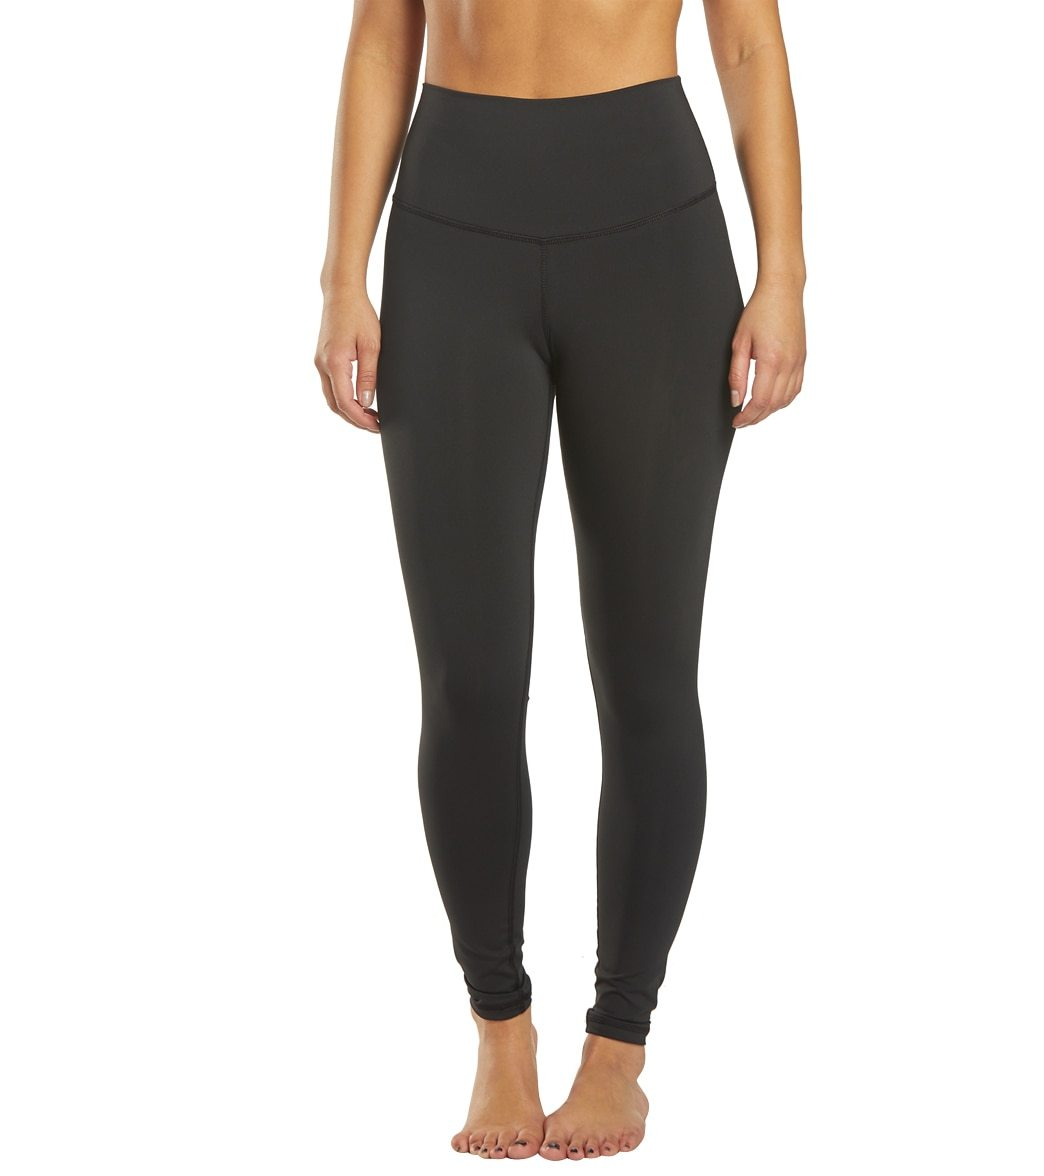 DYI Women's Take Control High Waisted Yoga Legging - Black Small Spandex Moisture Wicking